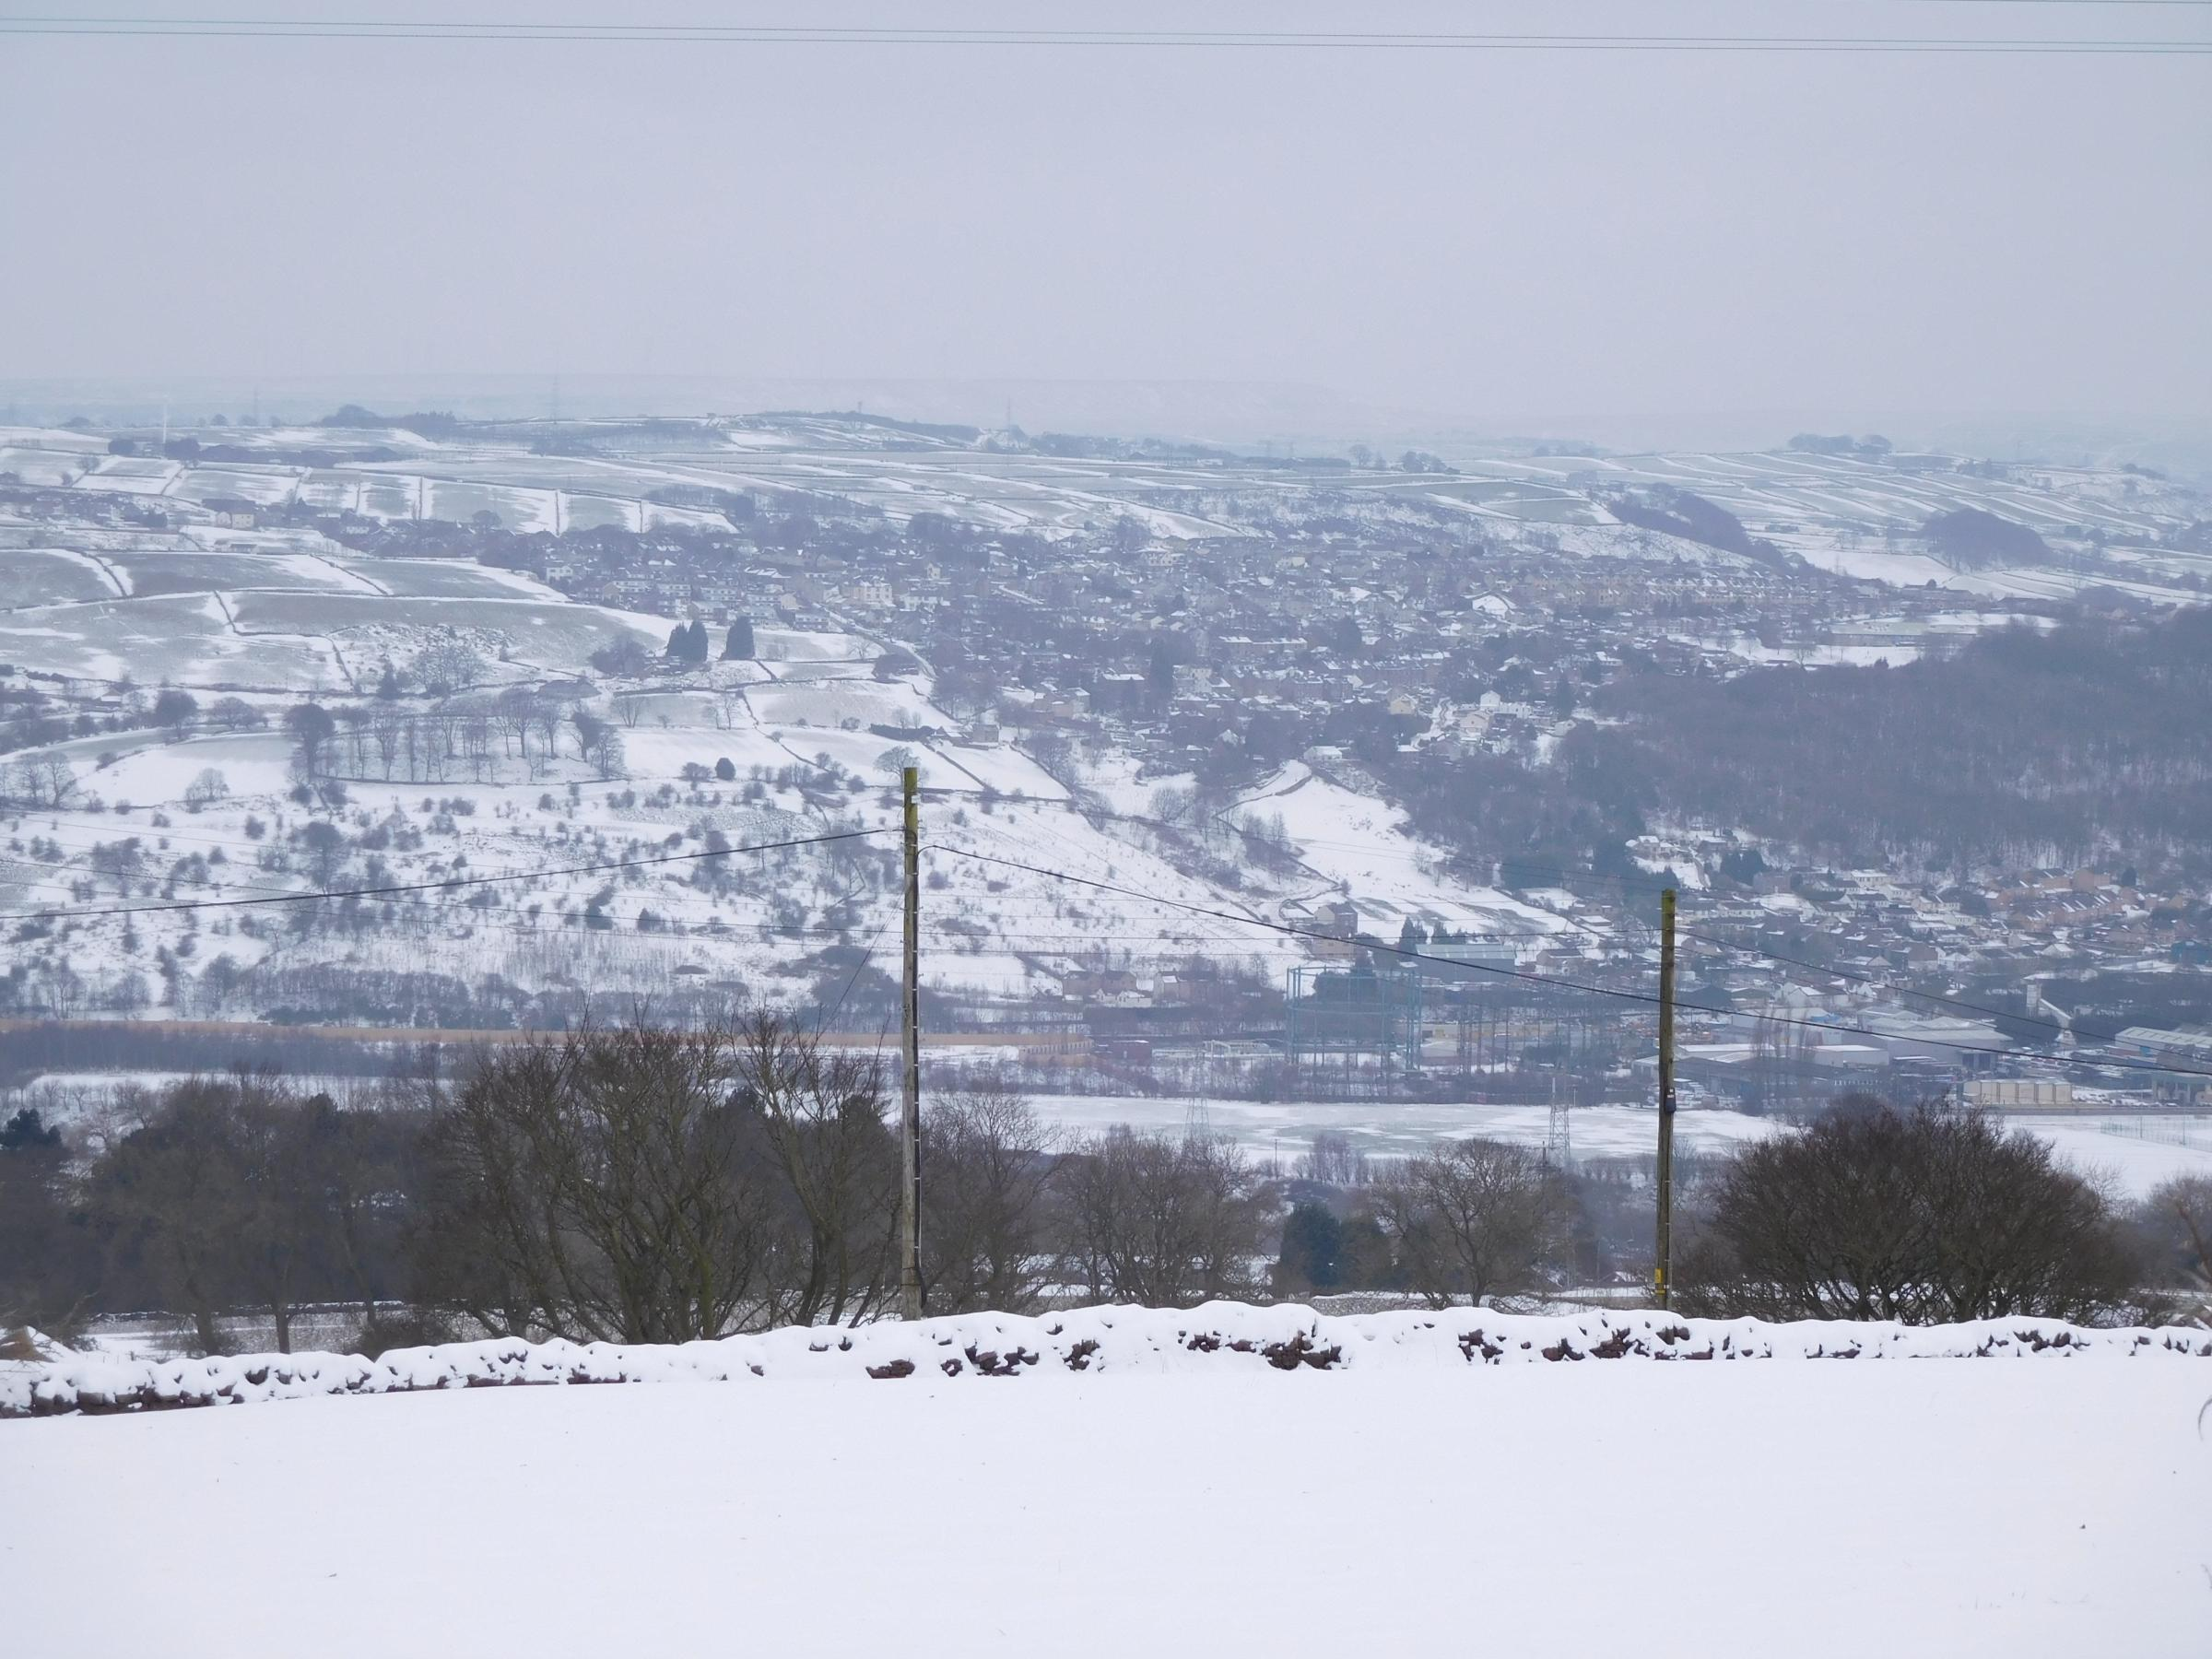 A view across the valley towards Long Lee and Thwaites Brow, during last week's snowy weather